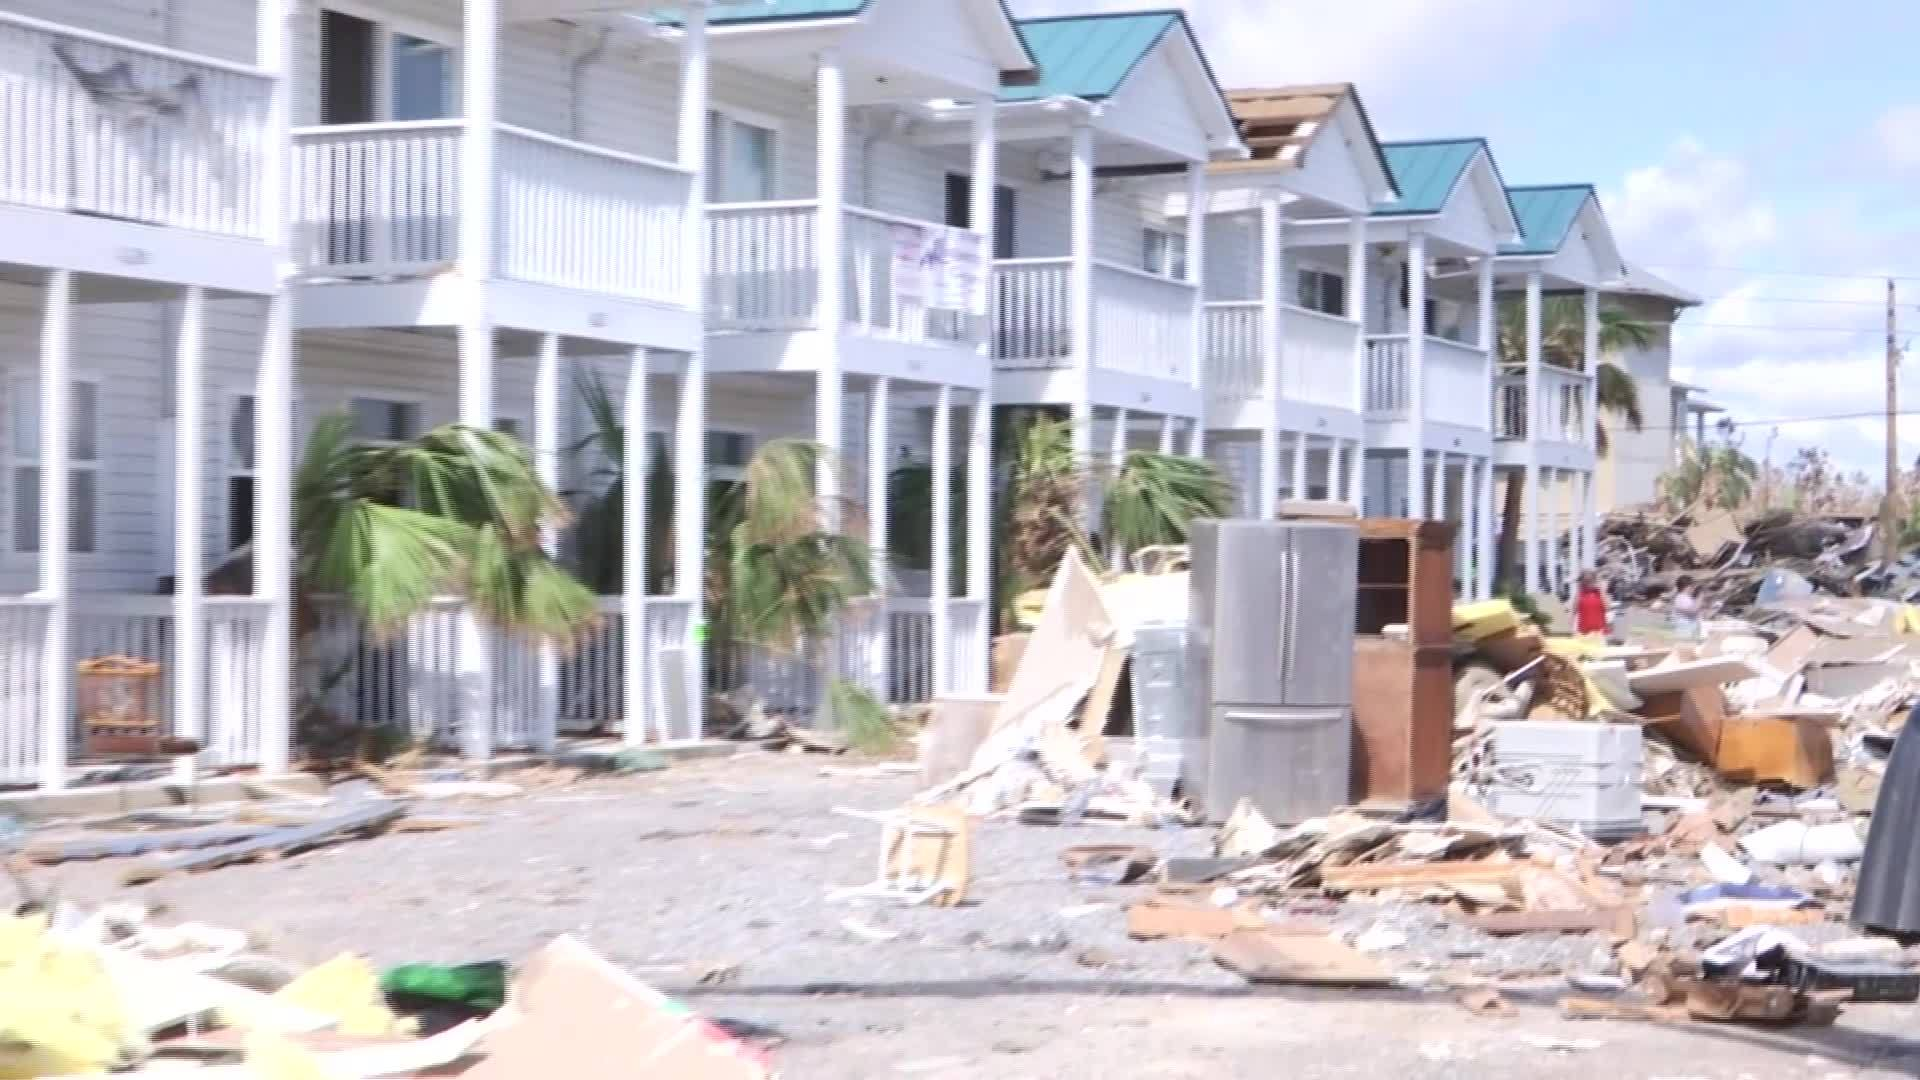 Cleanup efforts continue in Mexico Beach, FL